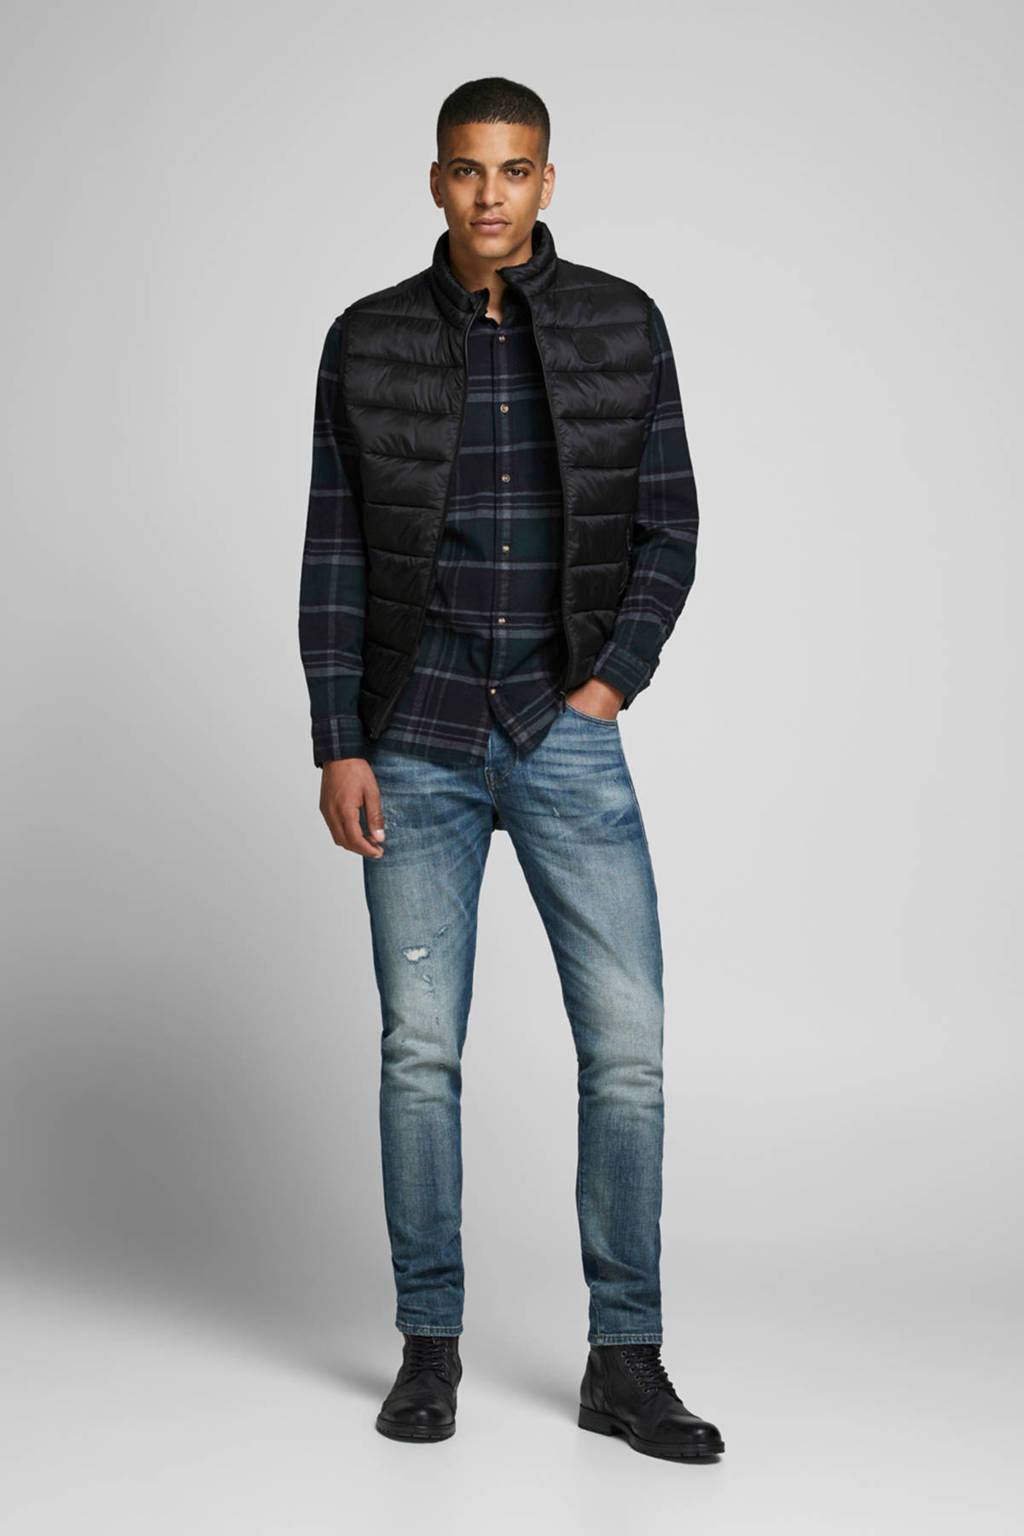 JACK & JONES ESSENTIALS bodywarmer zwart, Zwart